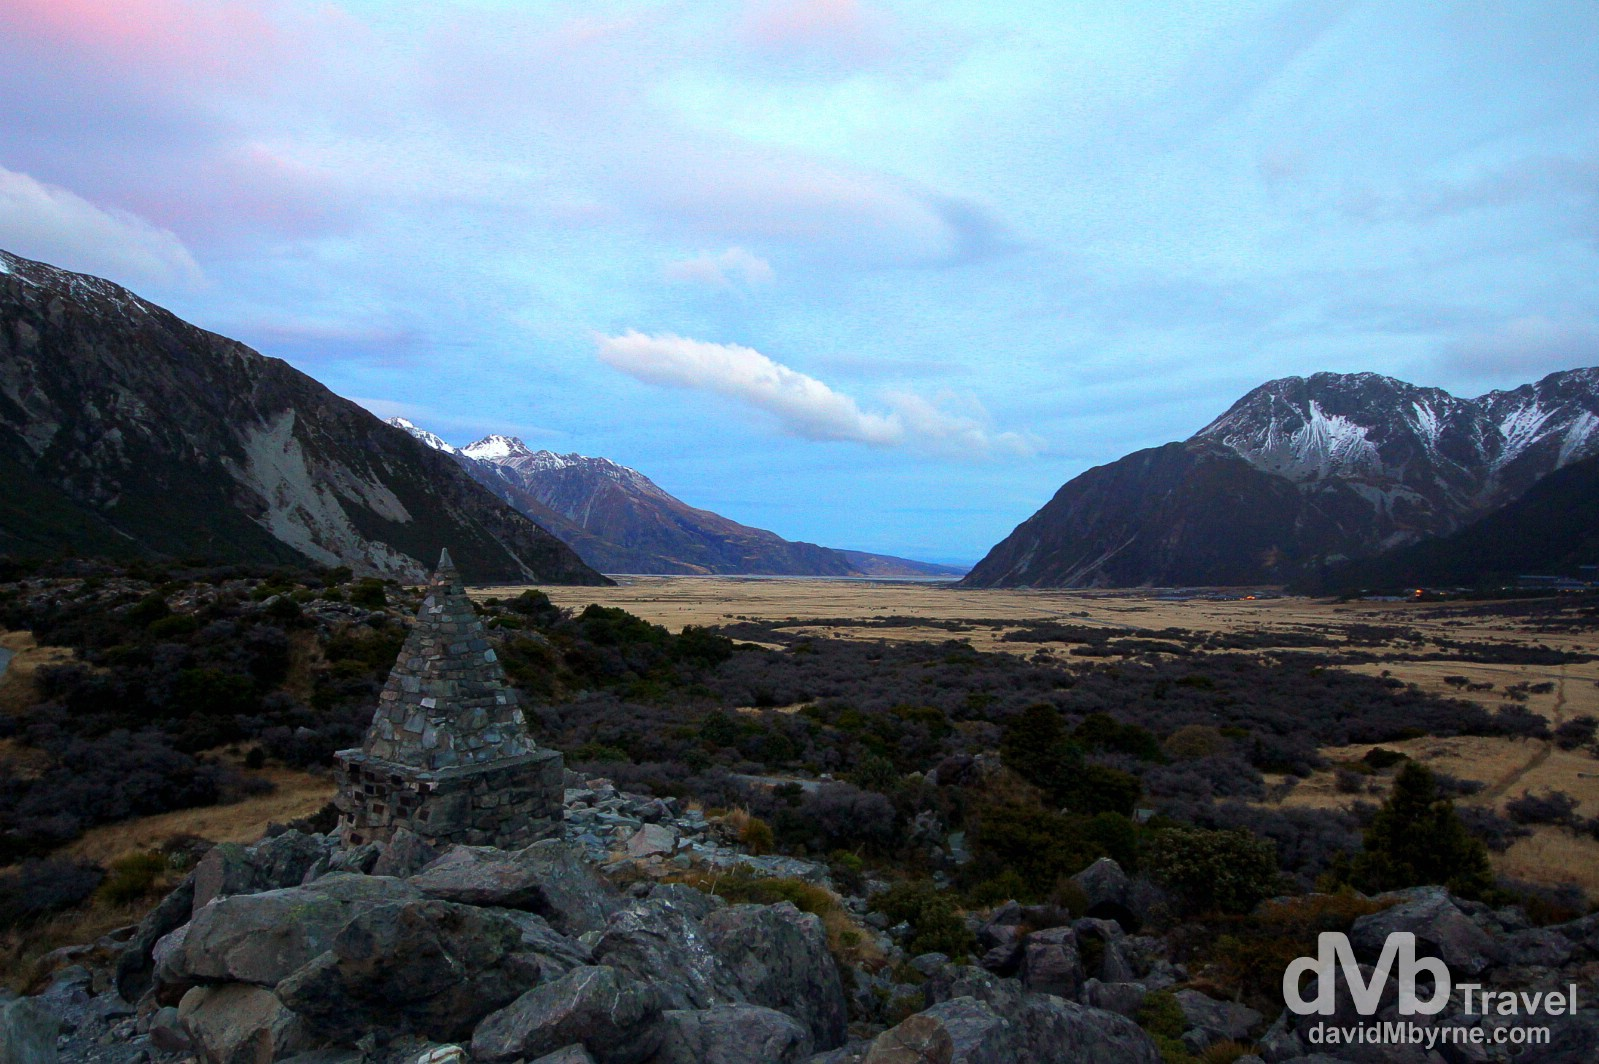 A late evening image of the landscape surrounding Mount Cook Village, Mount Cook National Park, South Island, New Zealand. May 30th 2012.